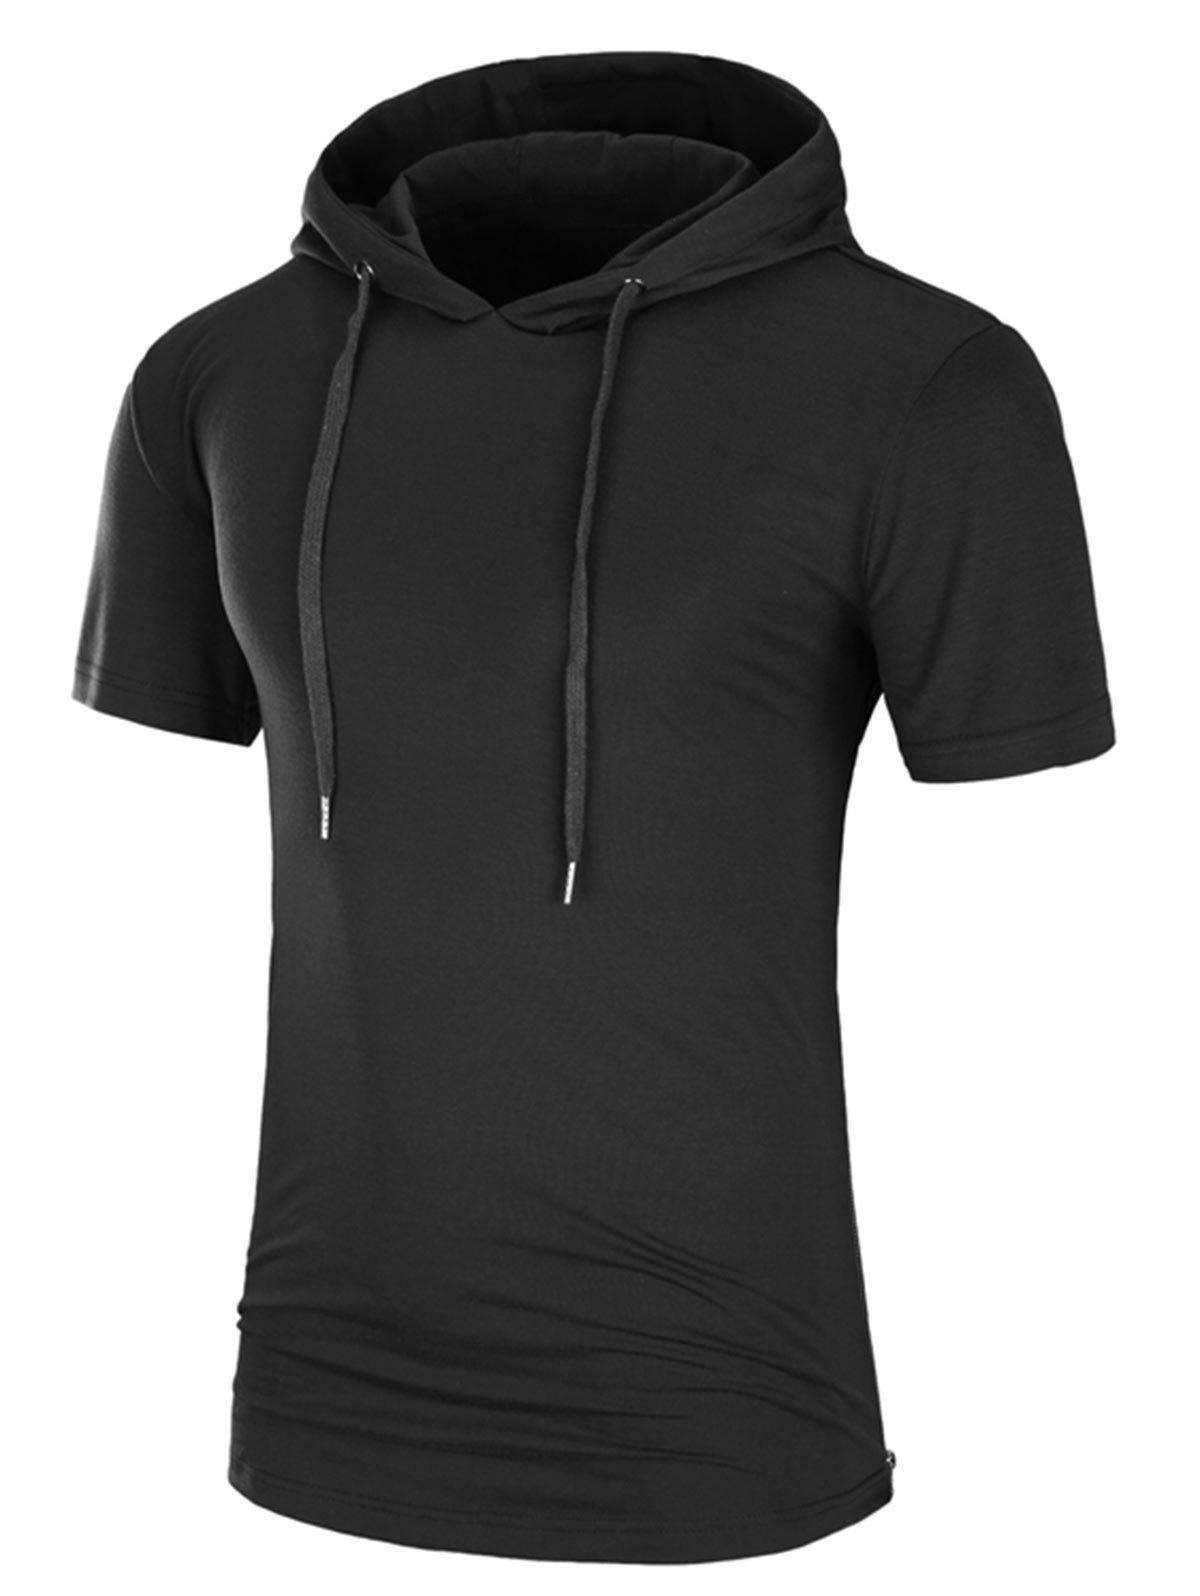 Hooded Side Zipper Longline T-Shirt - BLACK M